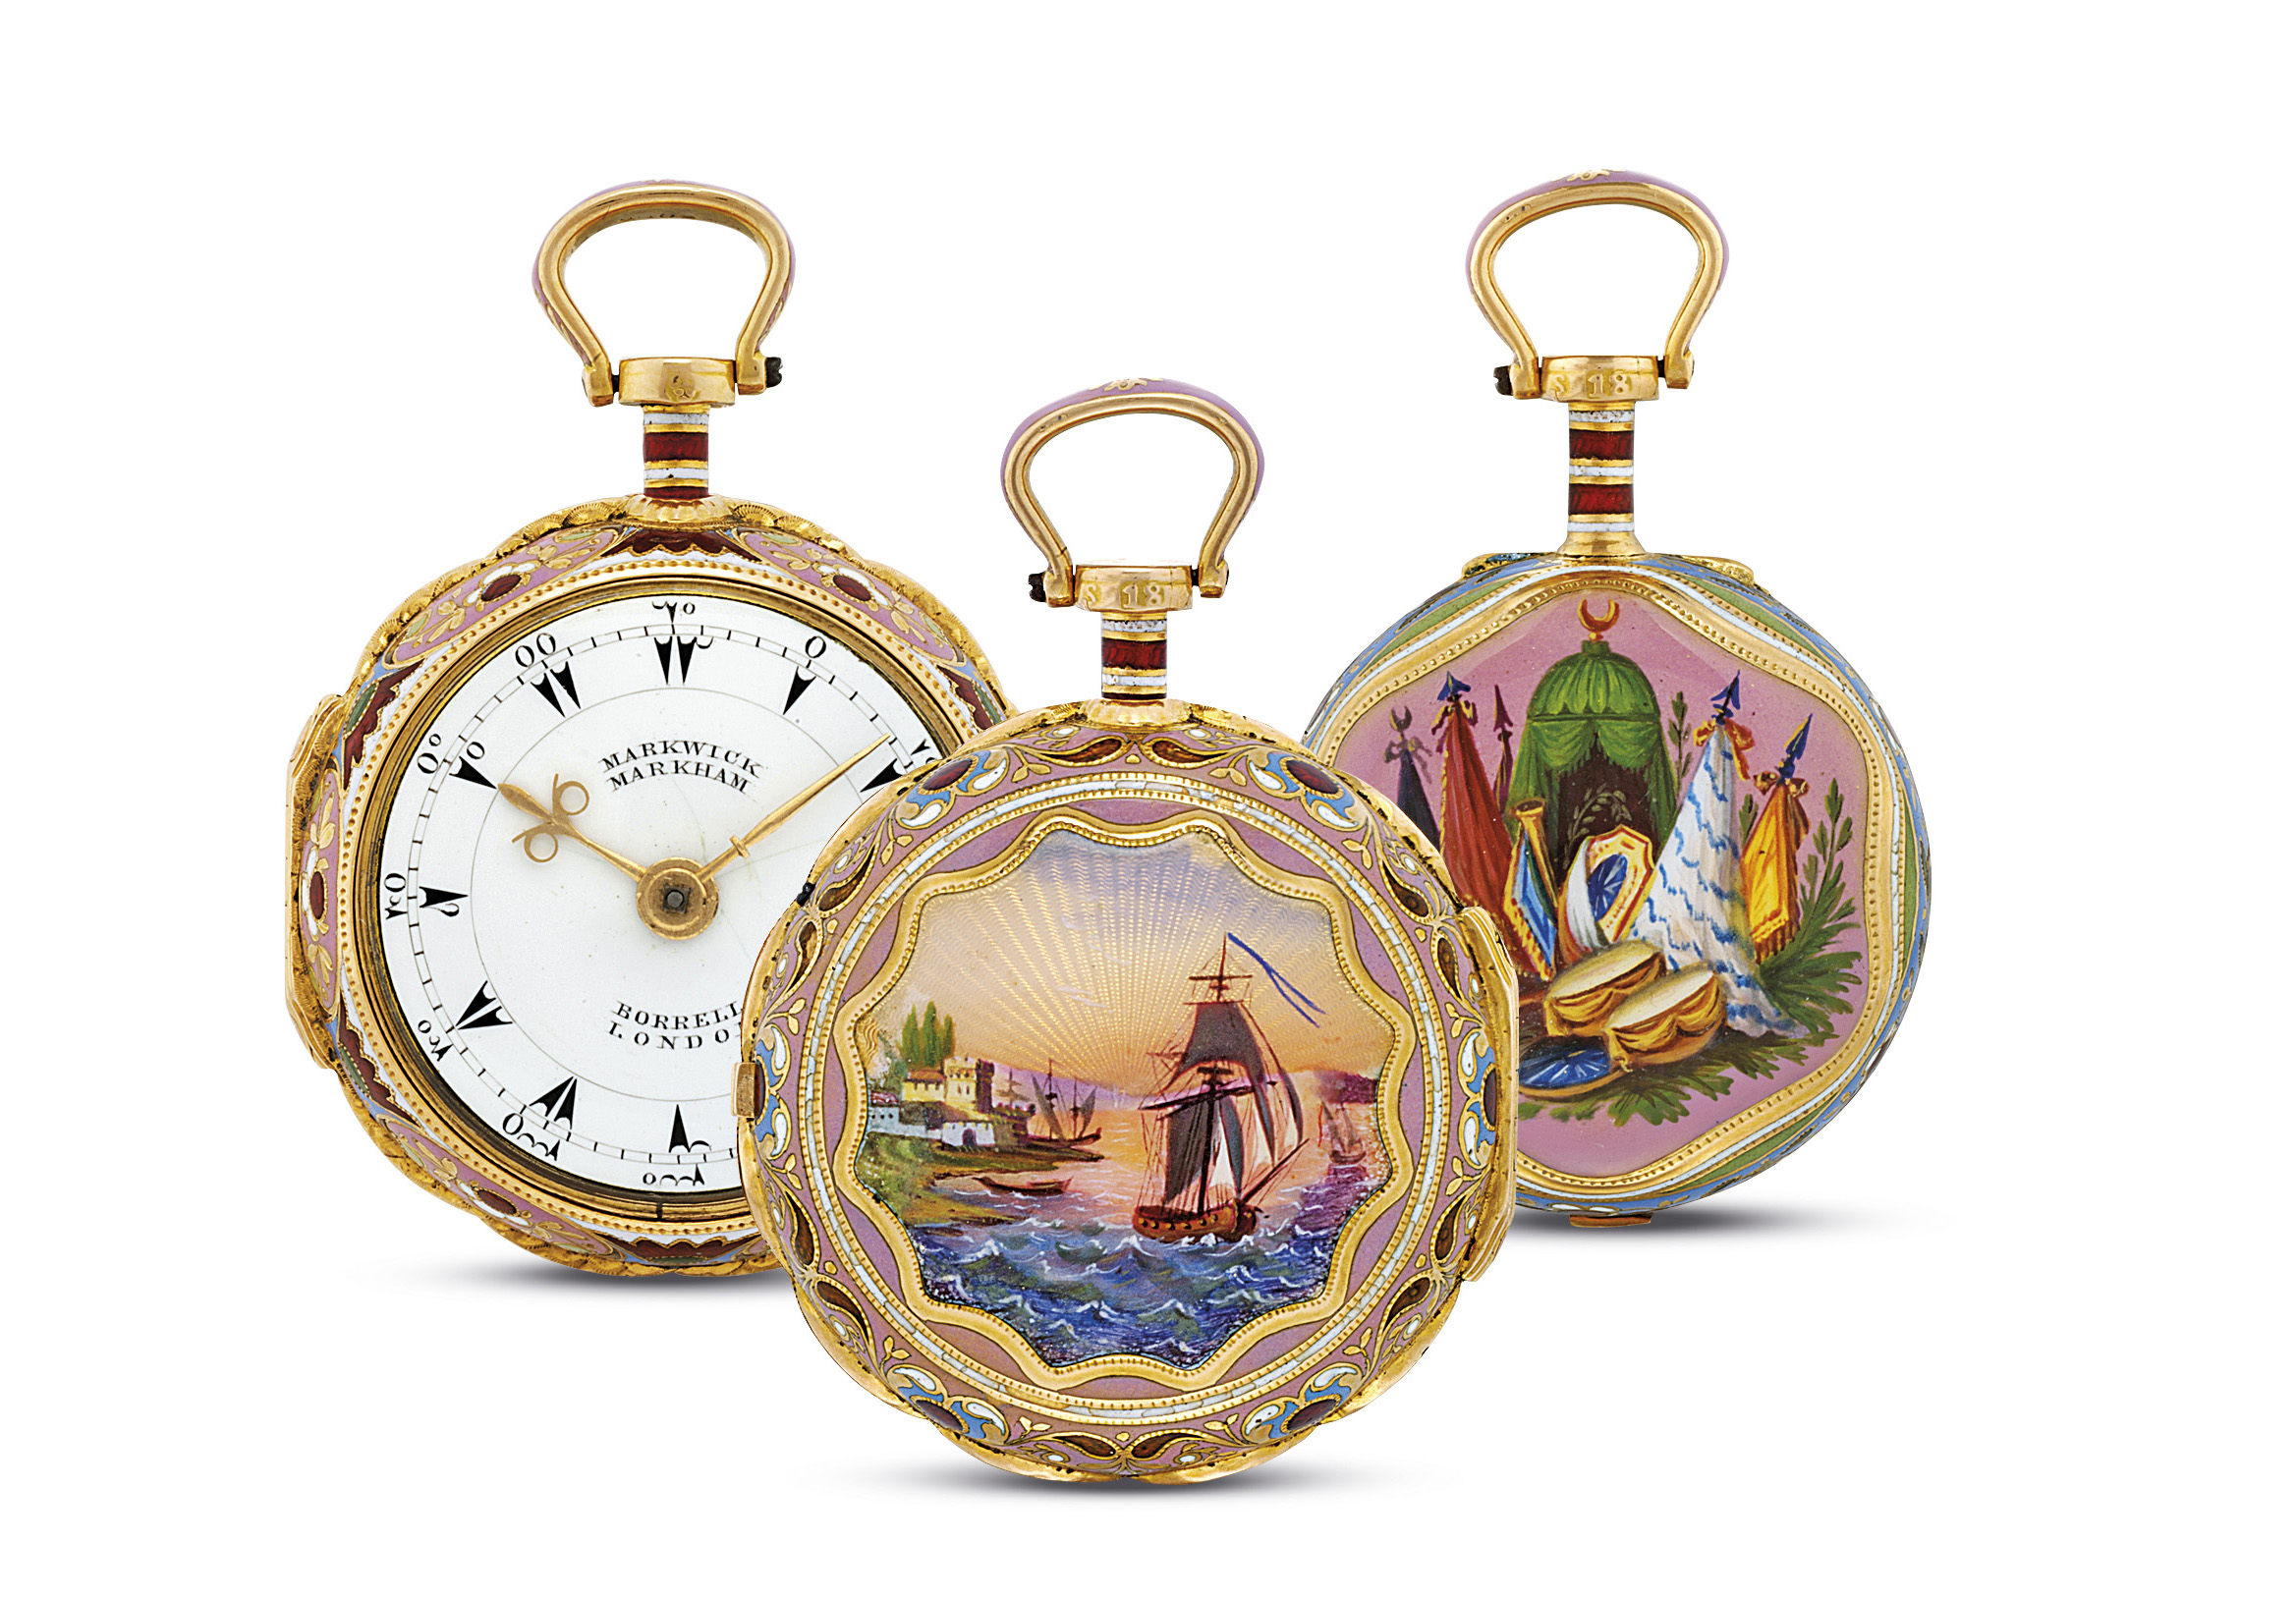 MARKWICK MARKHAM. A RARE 18K GOLD AND ENAMEL PAIR CASE VERGE WATCH, MADE FOR THE TURKISH MARKET